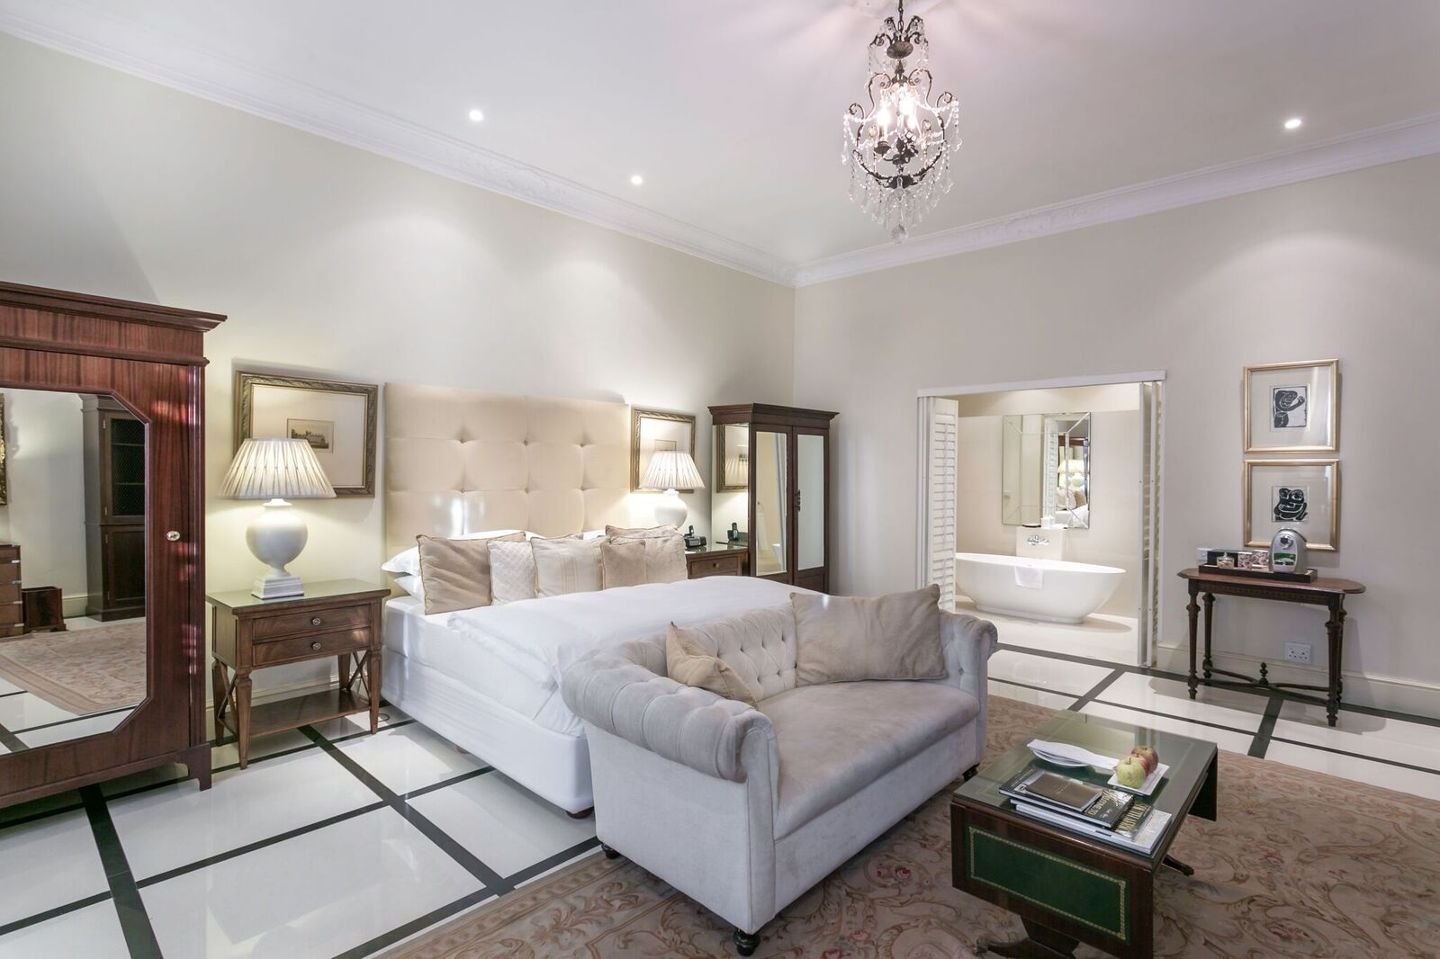 Fairlawns Boutique Hotel Amp Spa Johannesburg